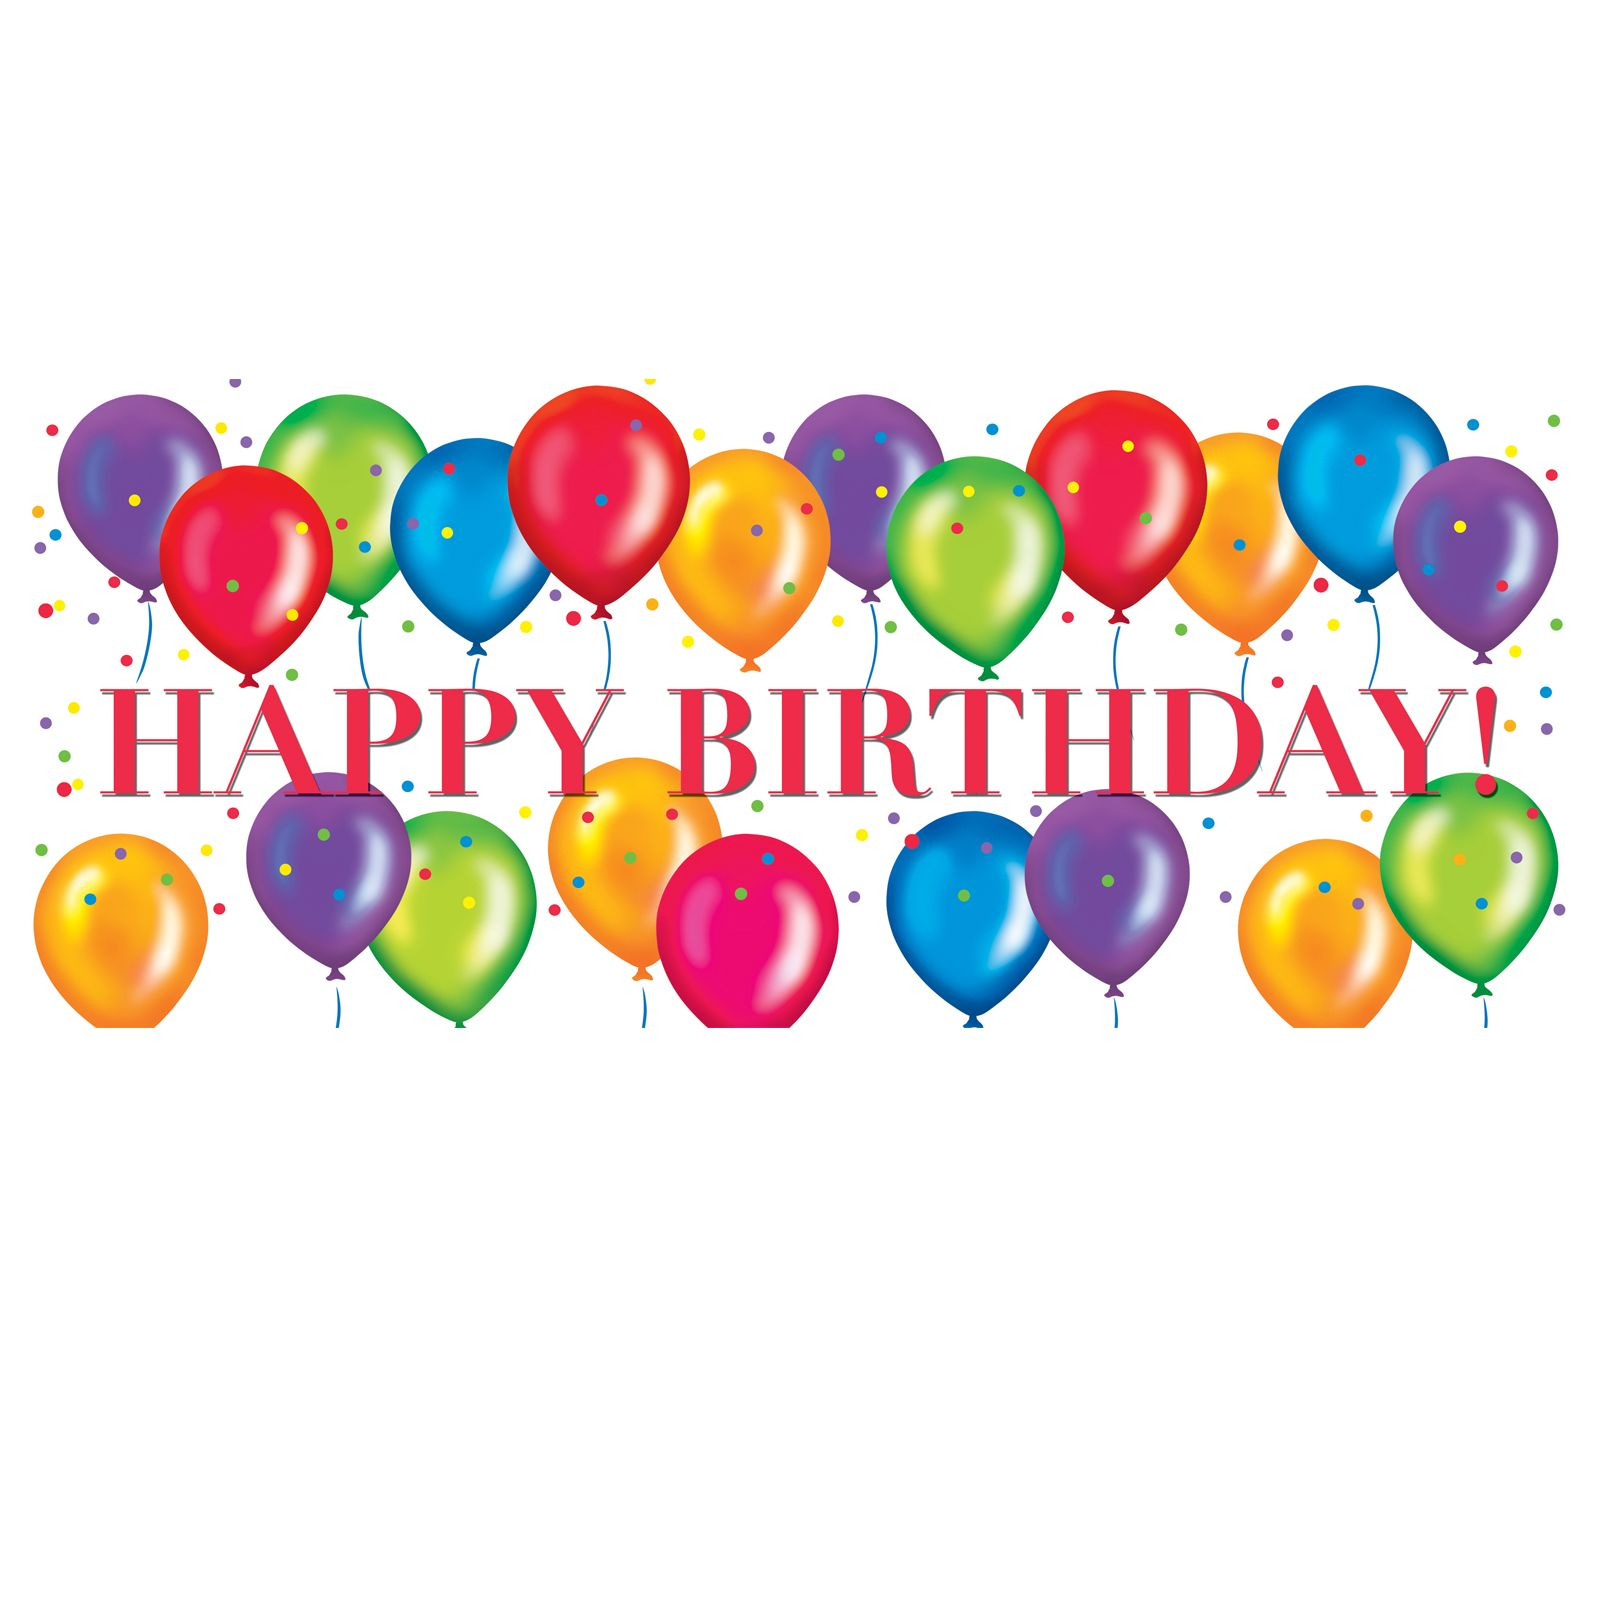 Birthday Clip Art Google Search Happy Birthday Free Birthday Freebies Happy Birthday Fun